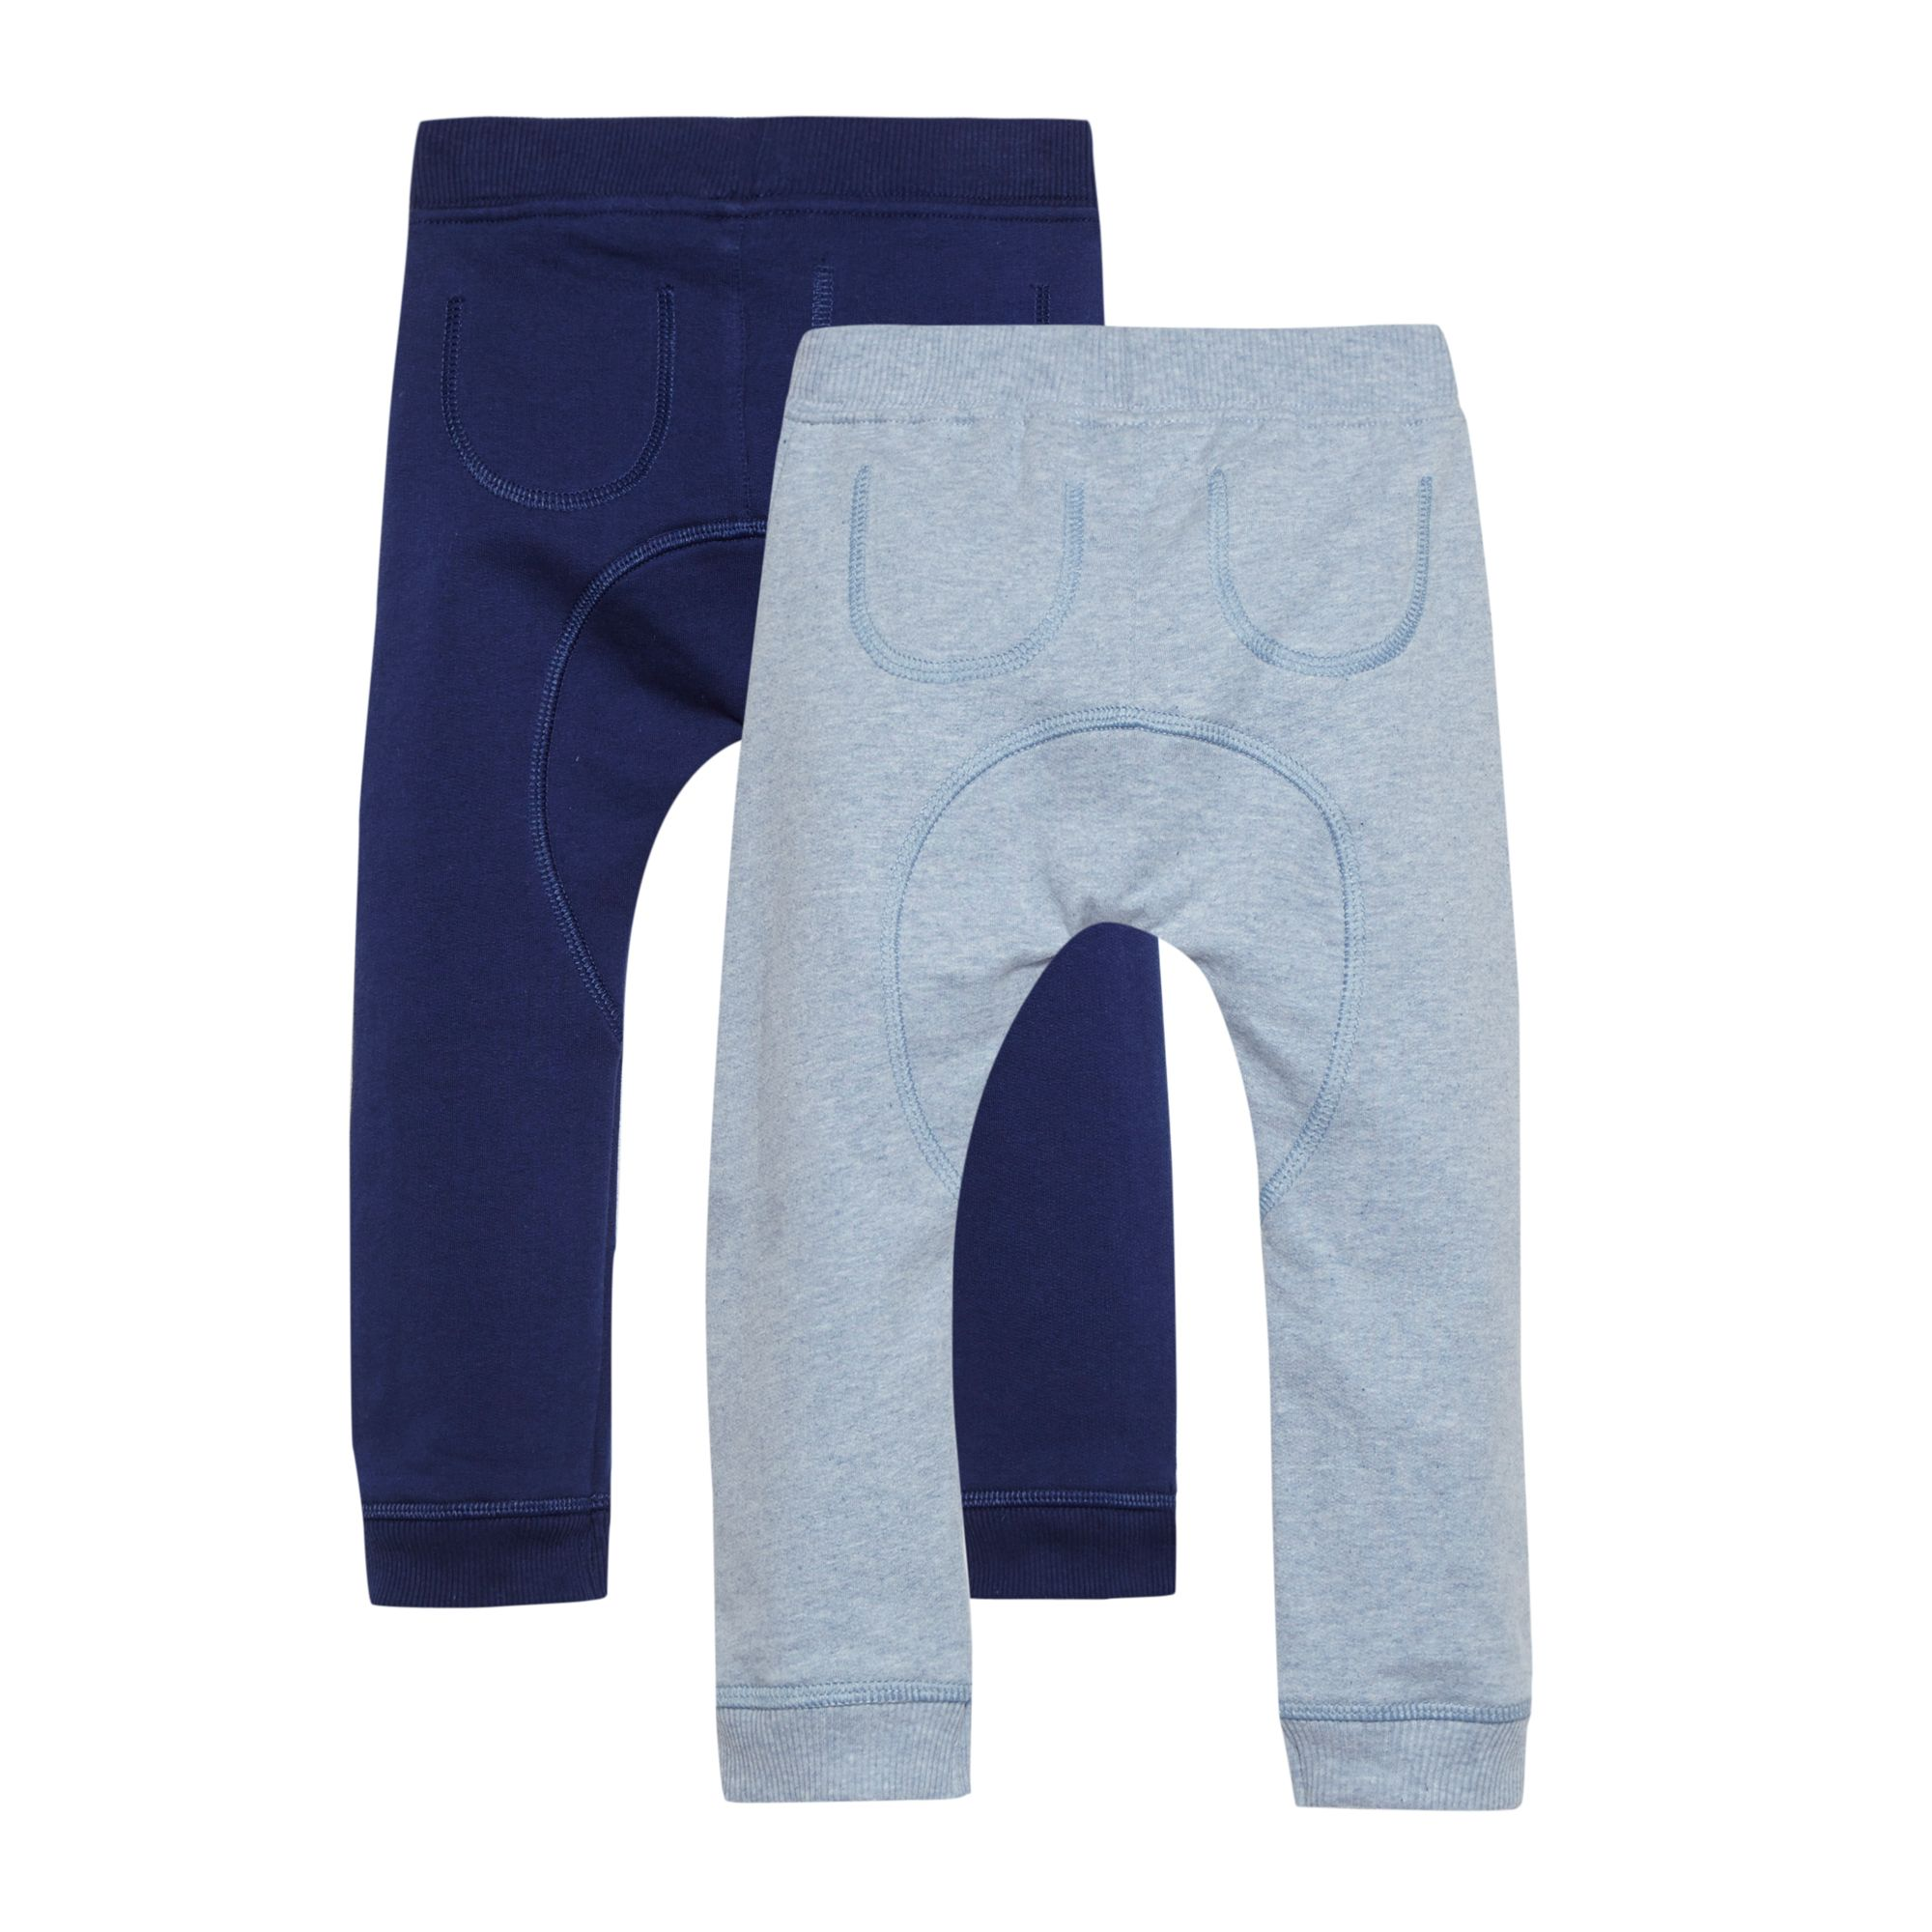 Baby Boy Gifts Debenhams : Bluezoo babies pack of two navy and blue jogging bottoms